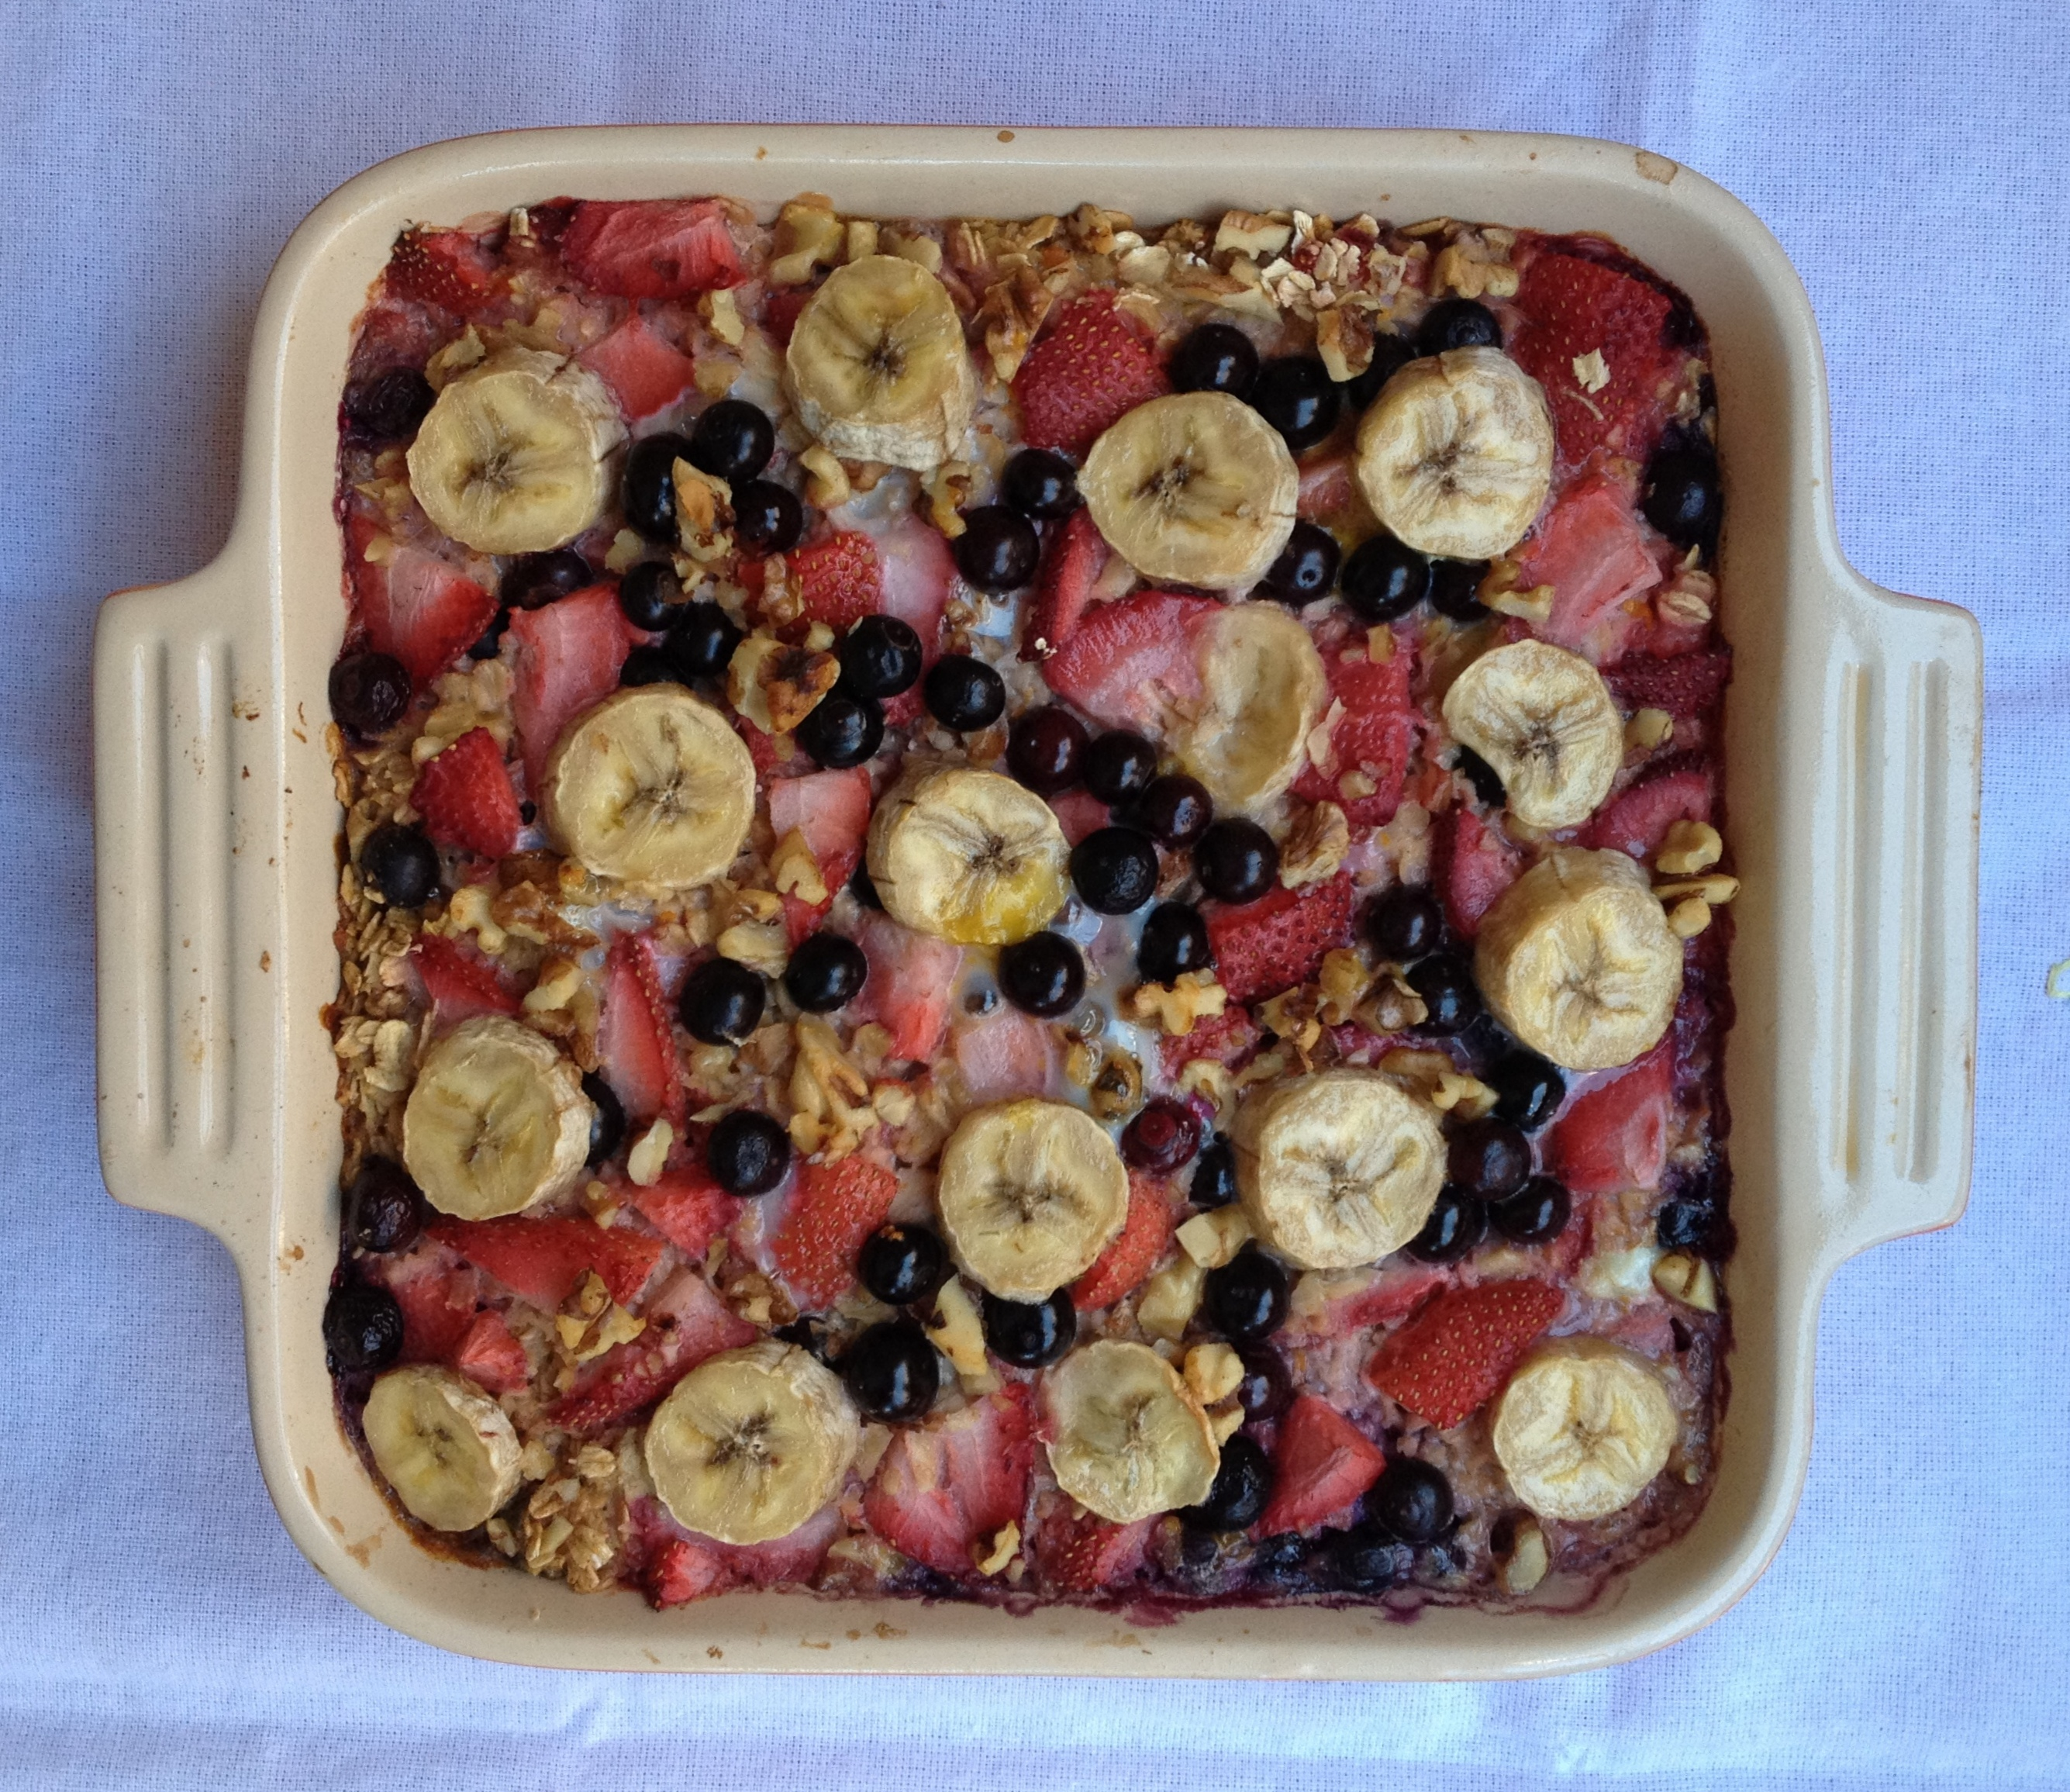 Baked Oatmeal with Strawberries, Blueberries, & Banana